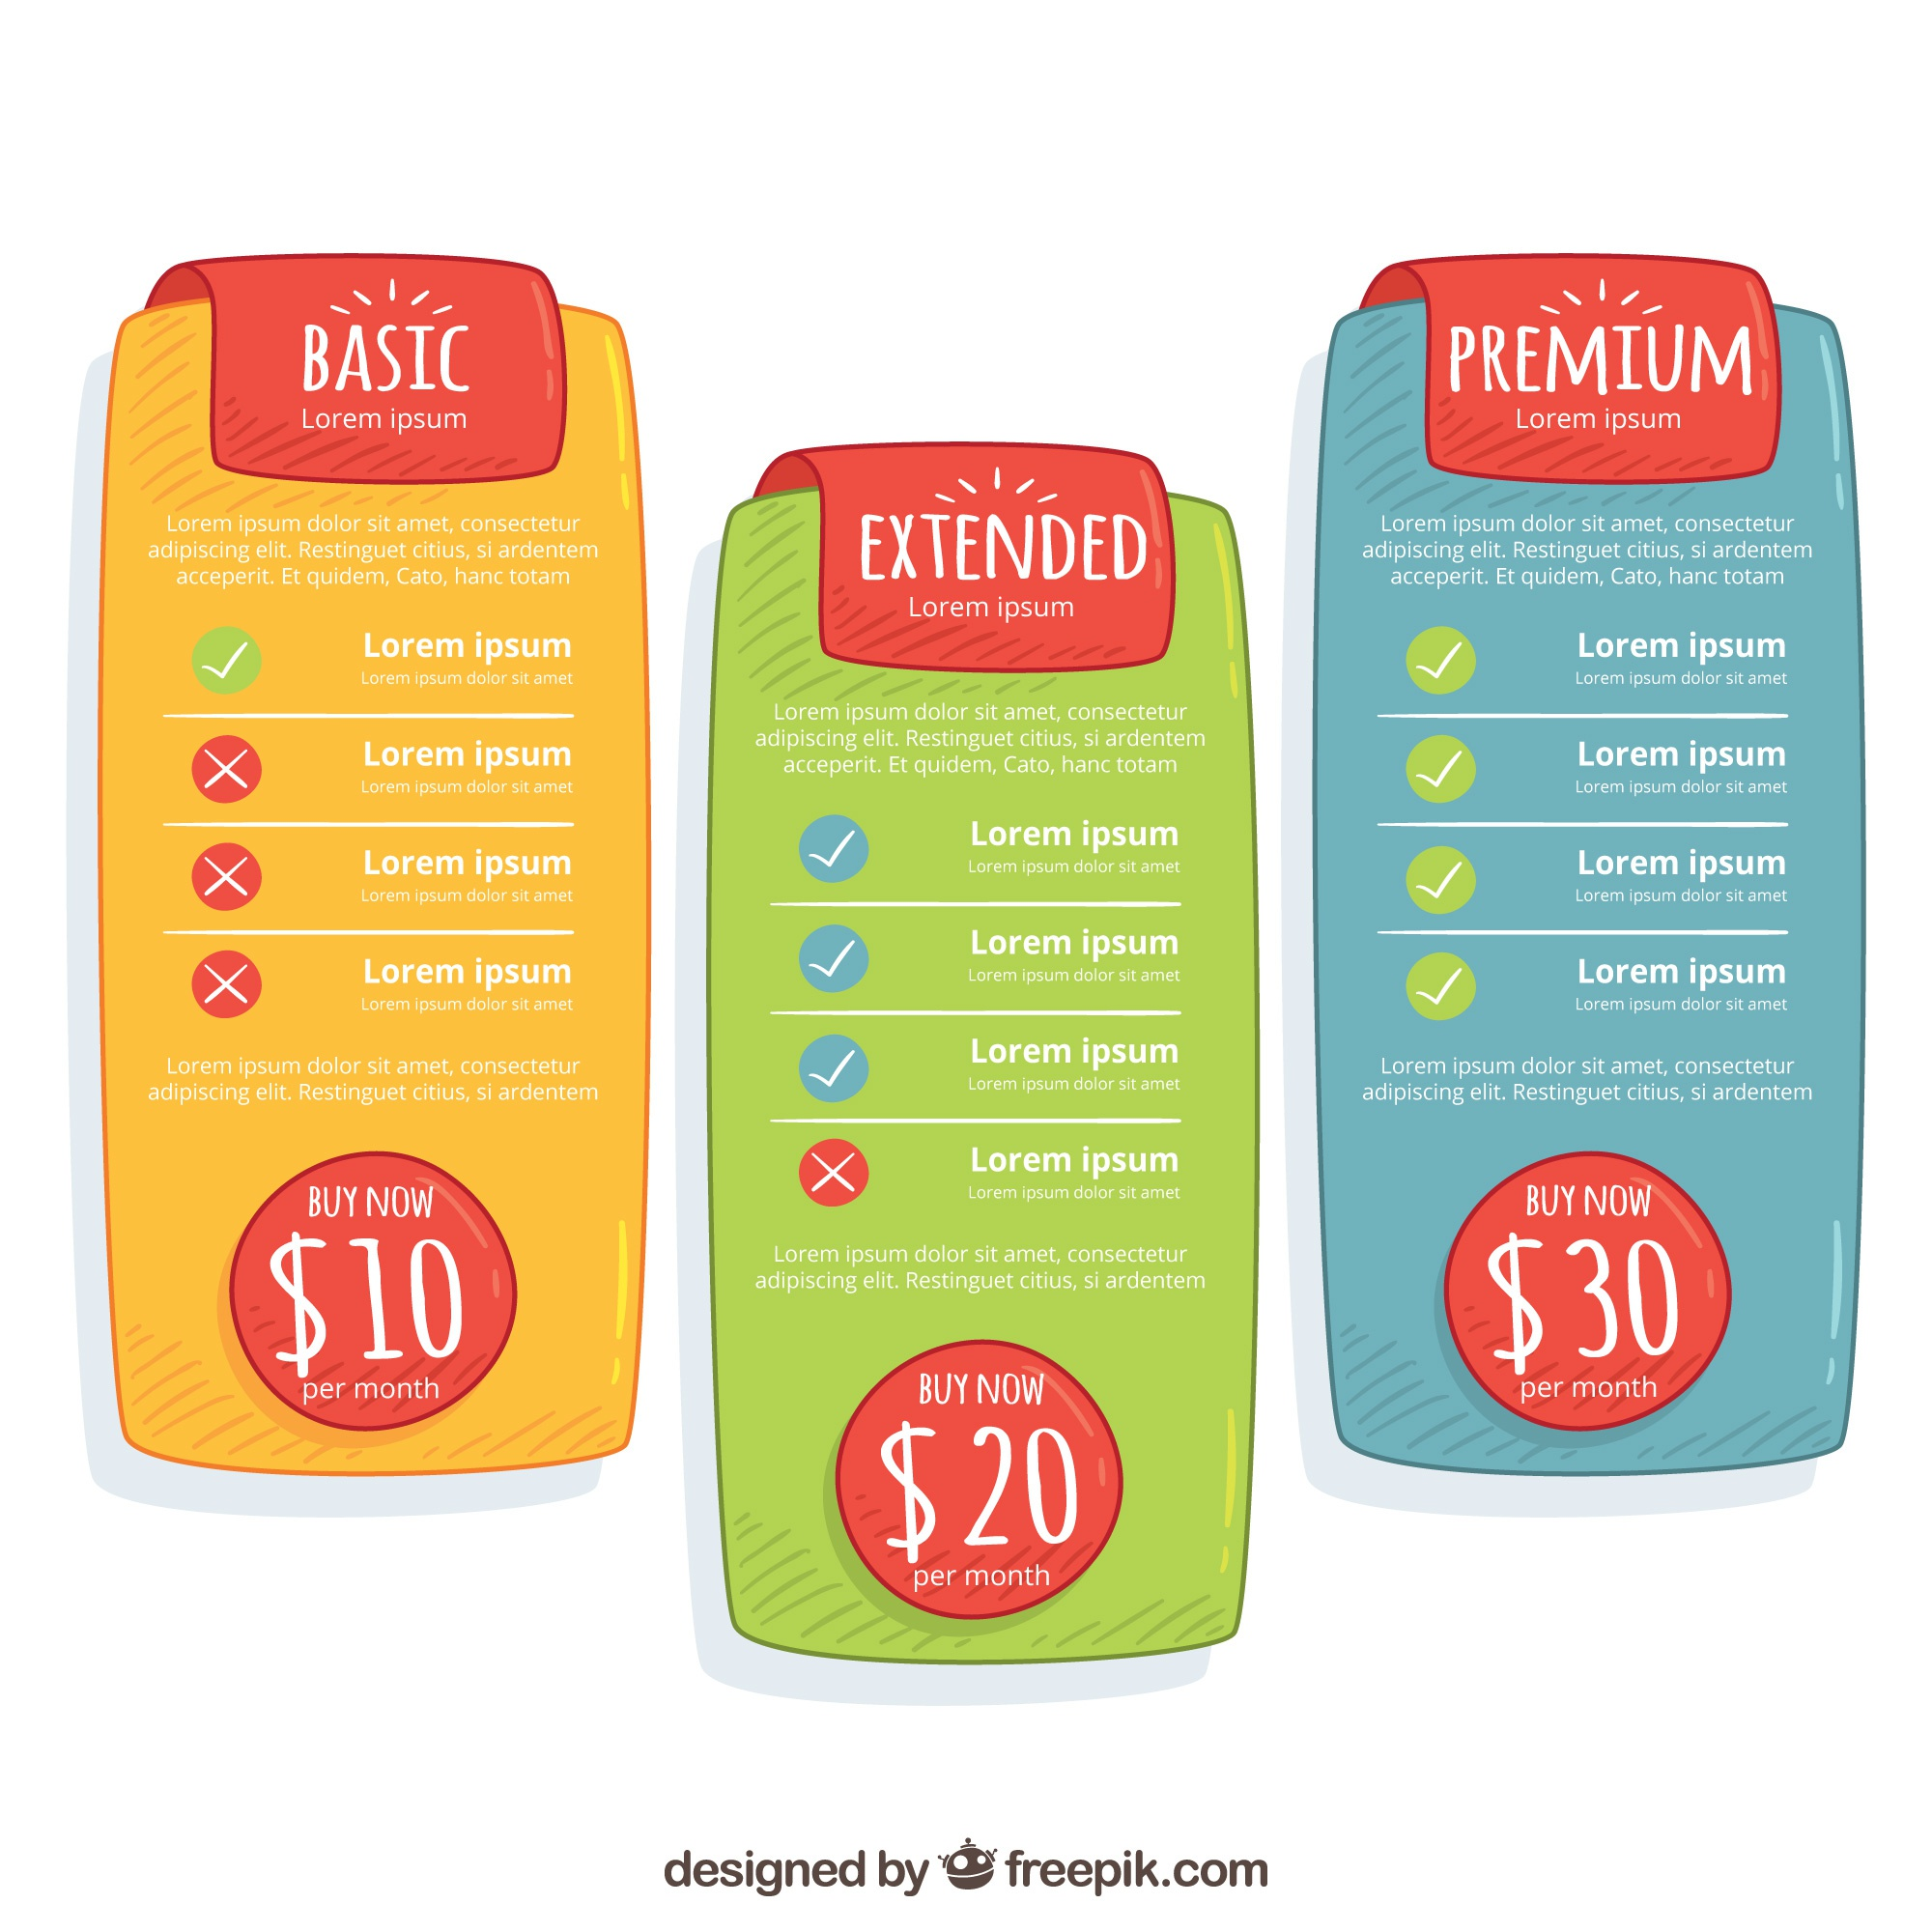 Different price lists